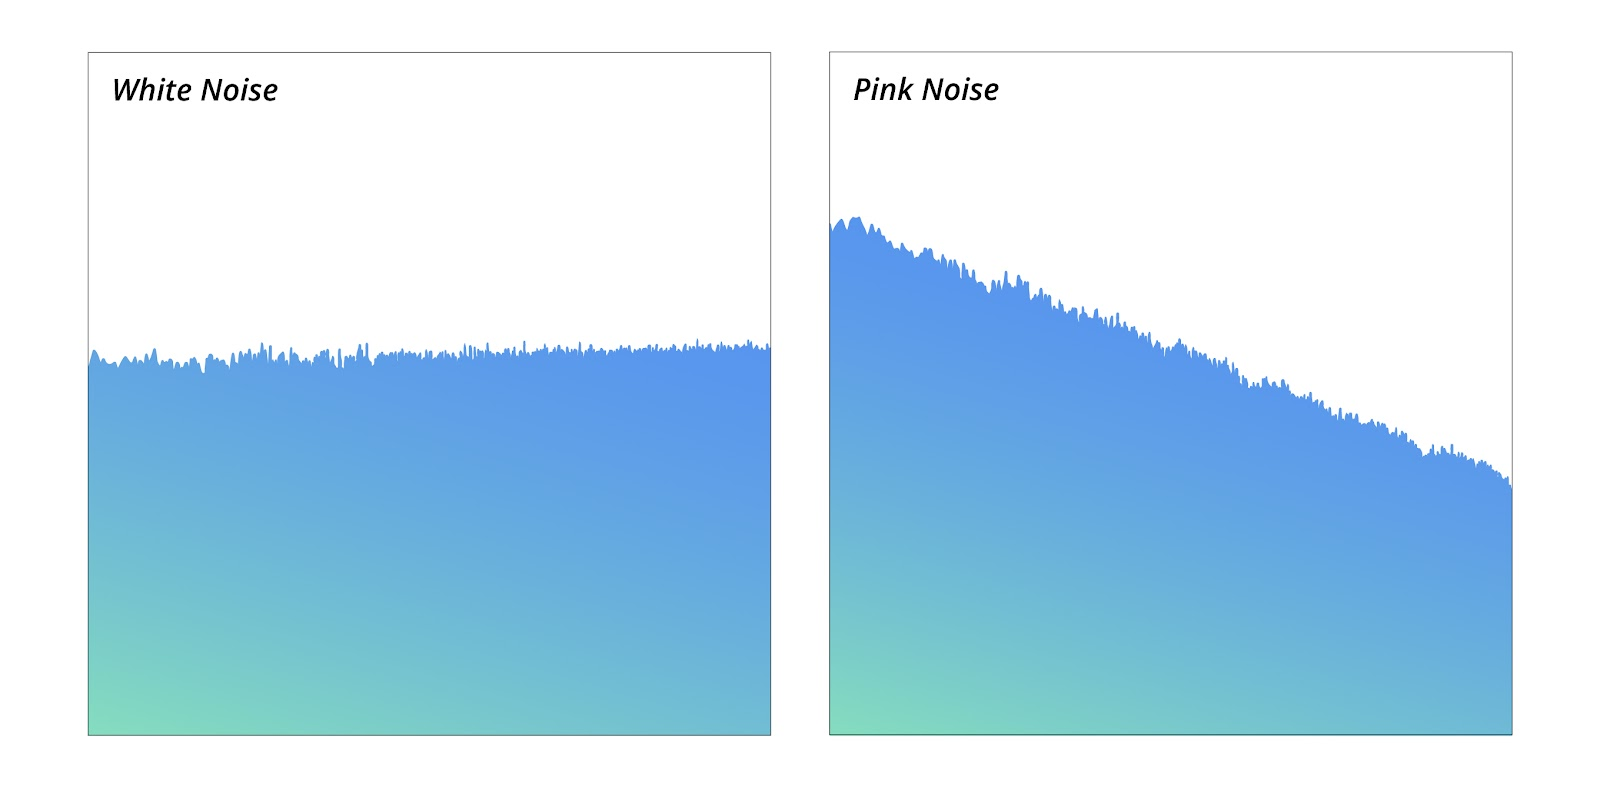 white noise and pink noise image in comparison